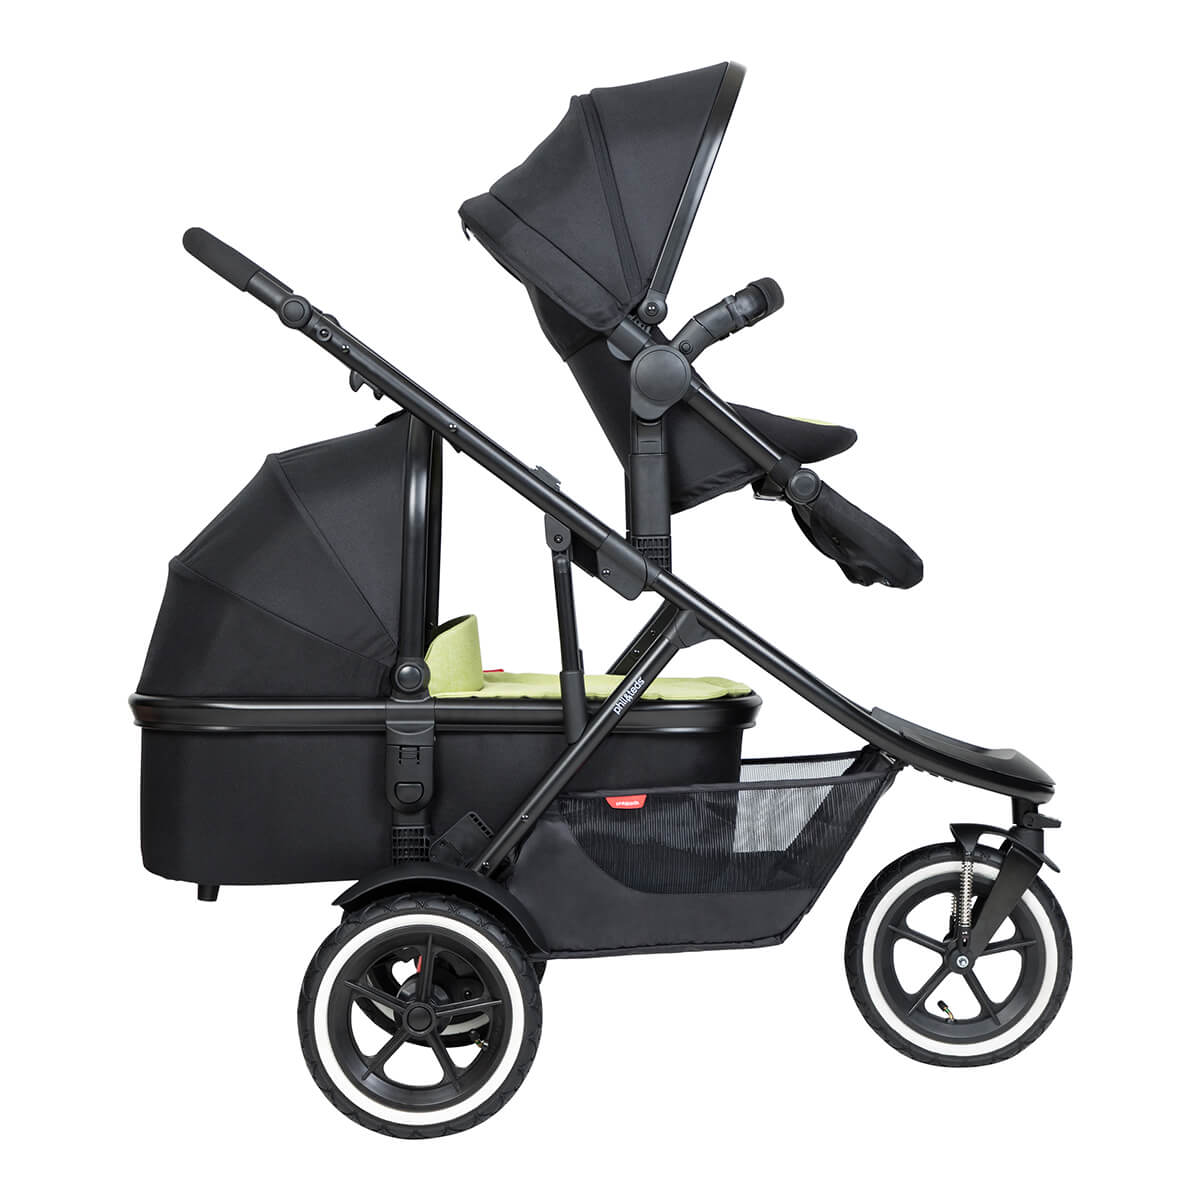 https://cdn.accentuate.io/4509898735693/19466204250306/philteds-sport-buggy-with-double-kit-extended-clip-and-snug-carrycot-side-view-v1626485359610.jpg?1200x1200